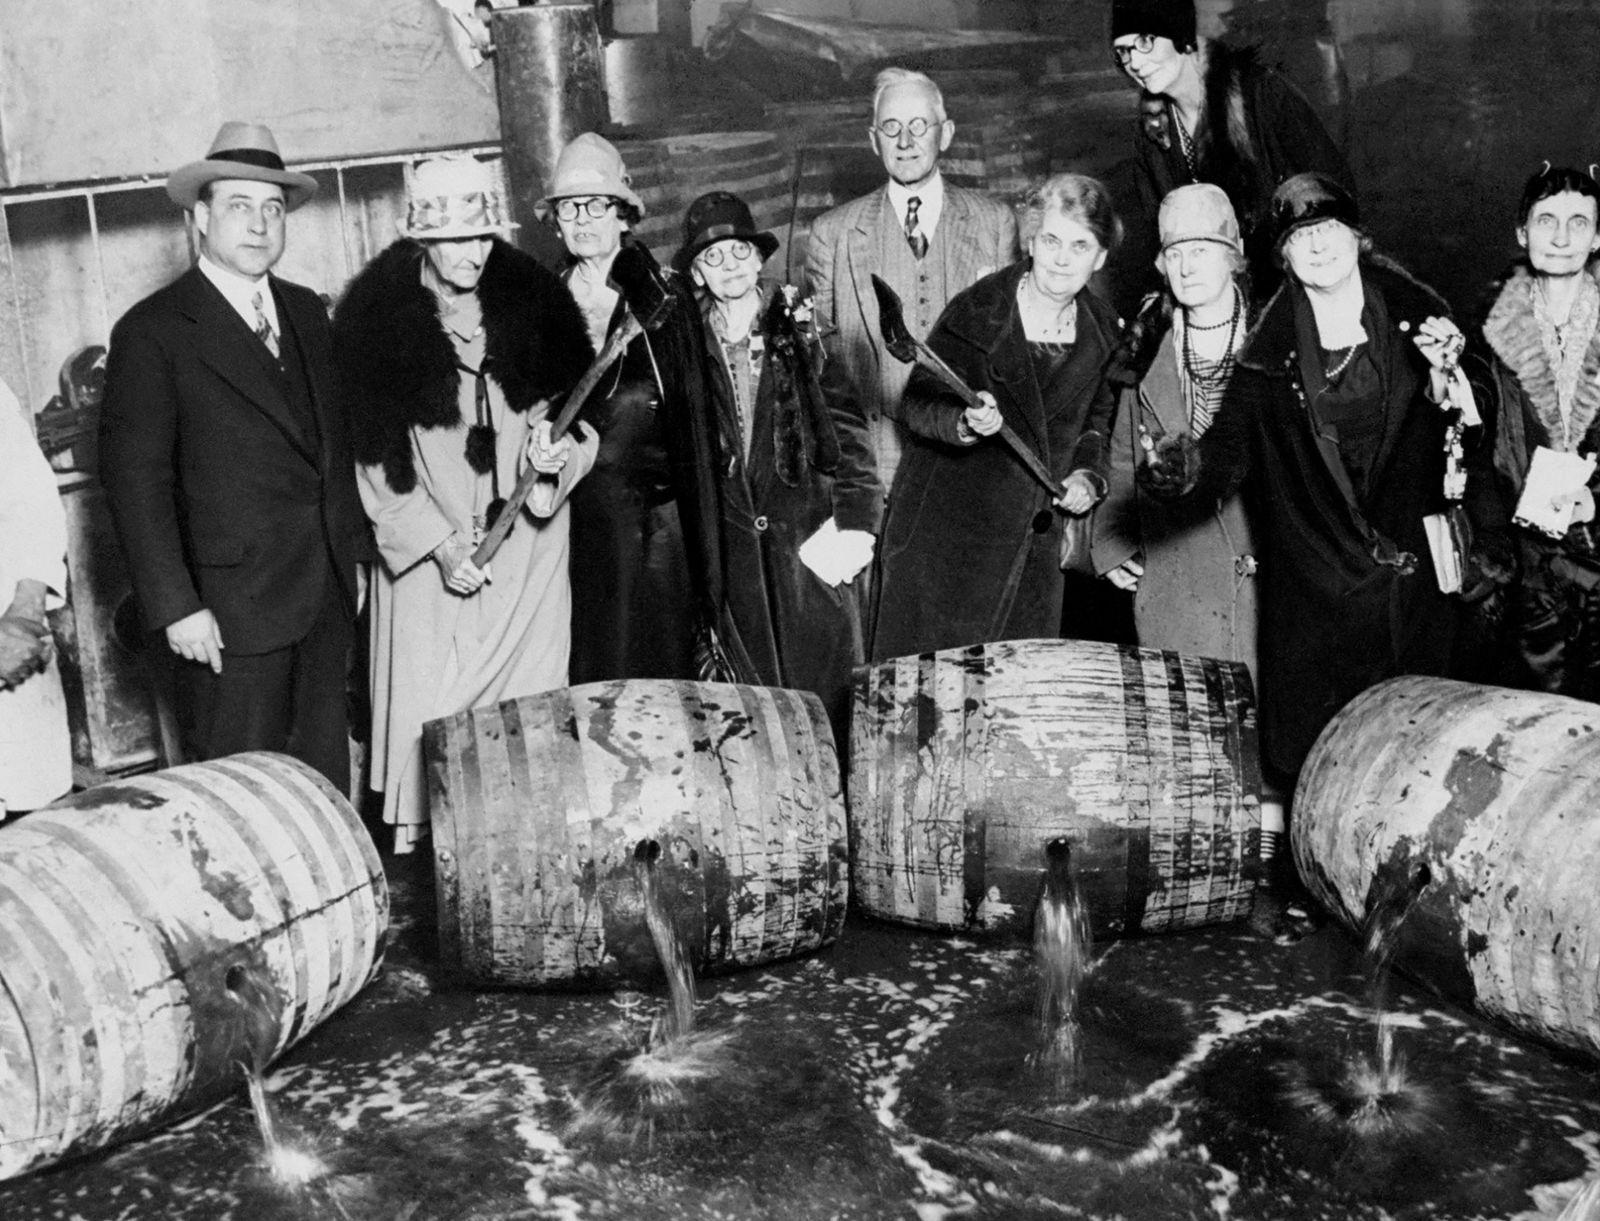 Prohibition - Members of Women's Christian Temperance Union crack open bar